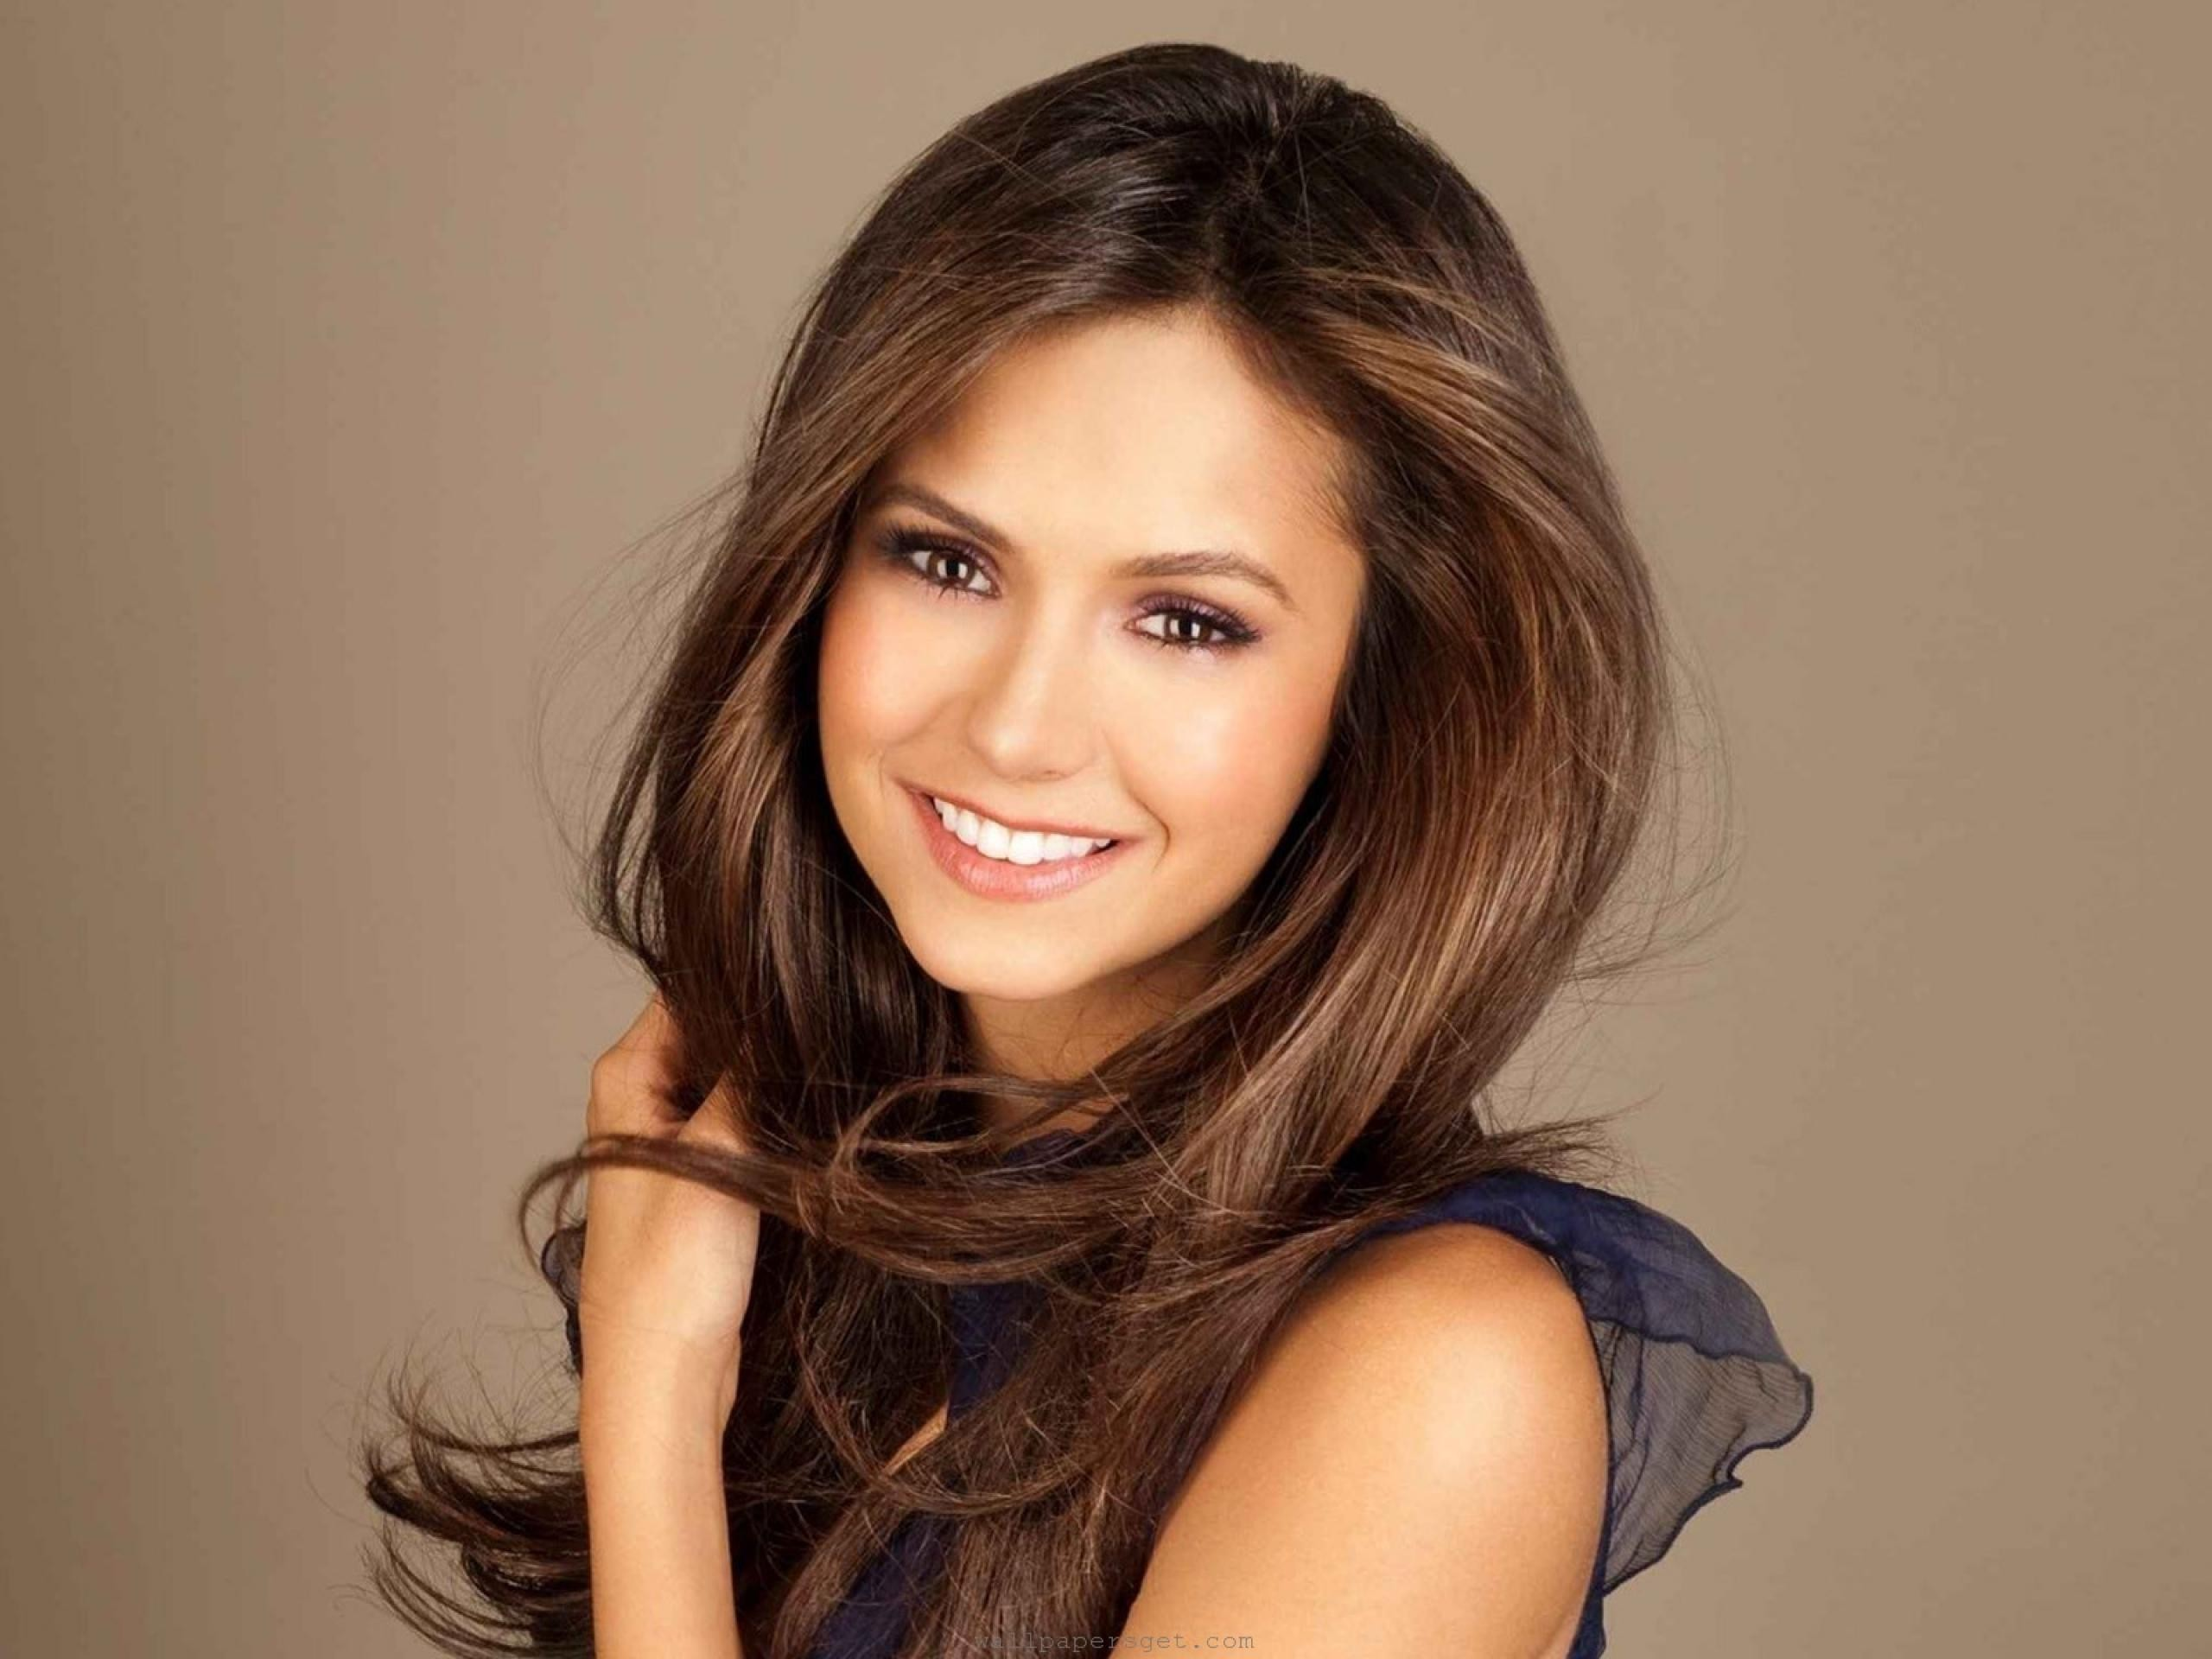 Nina pic picture 66